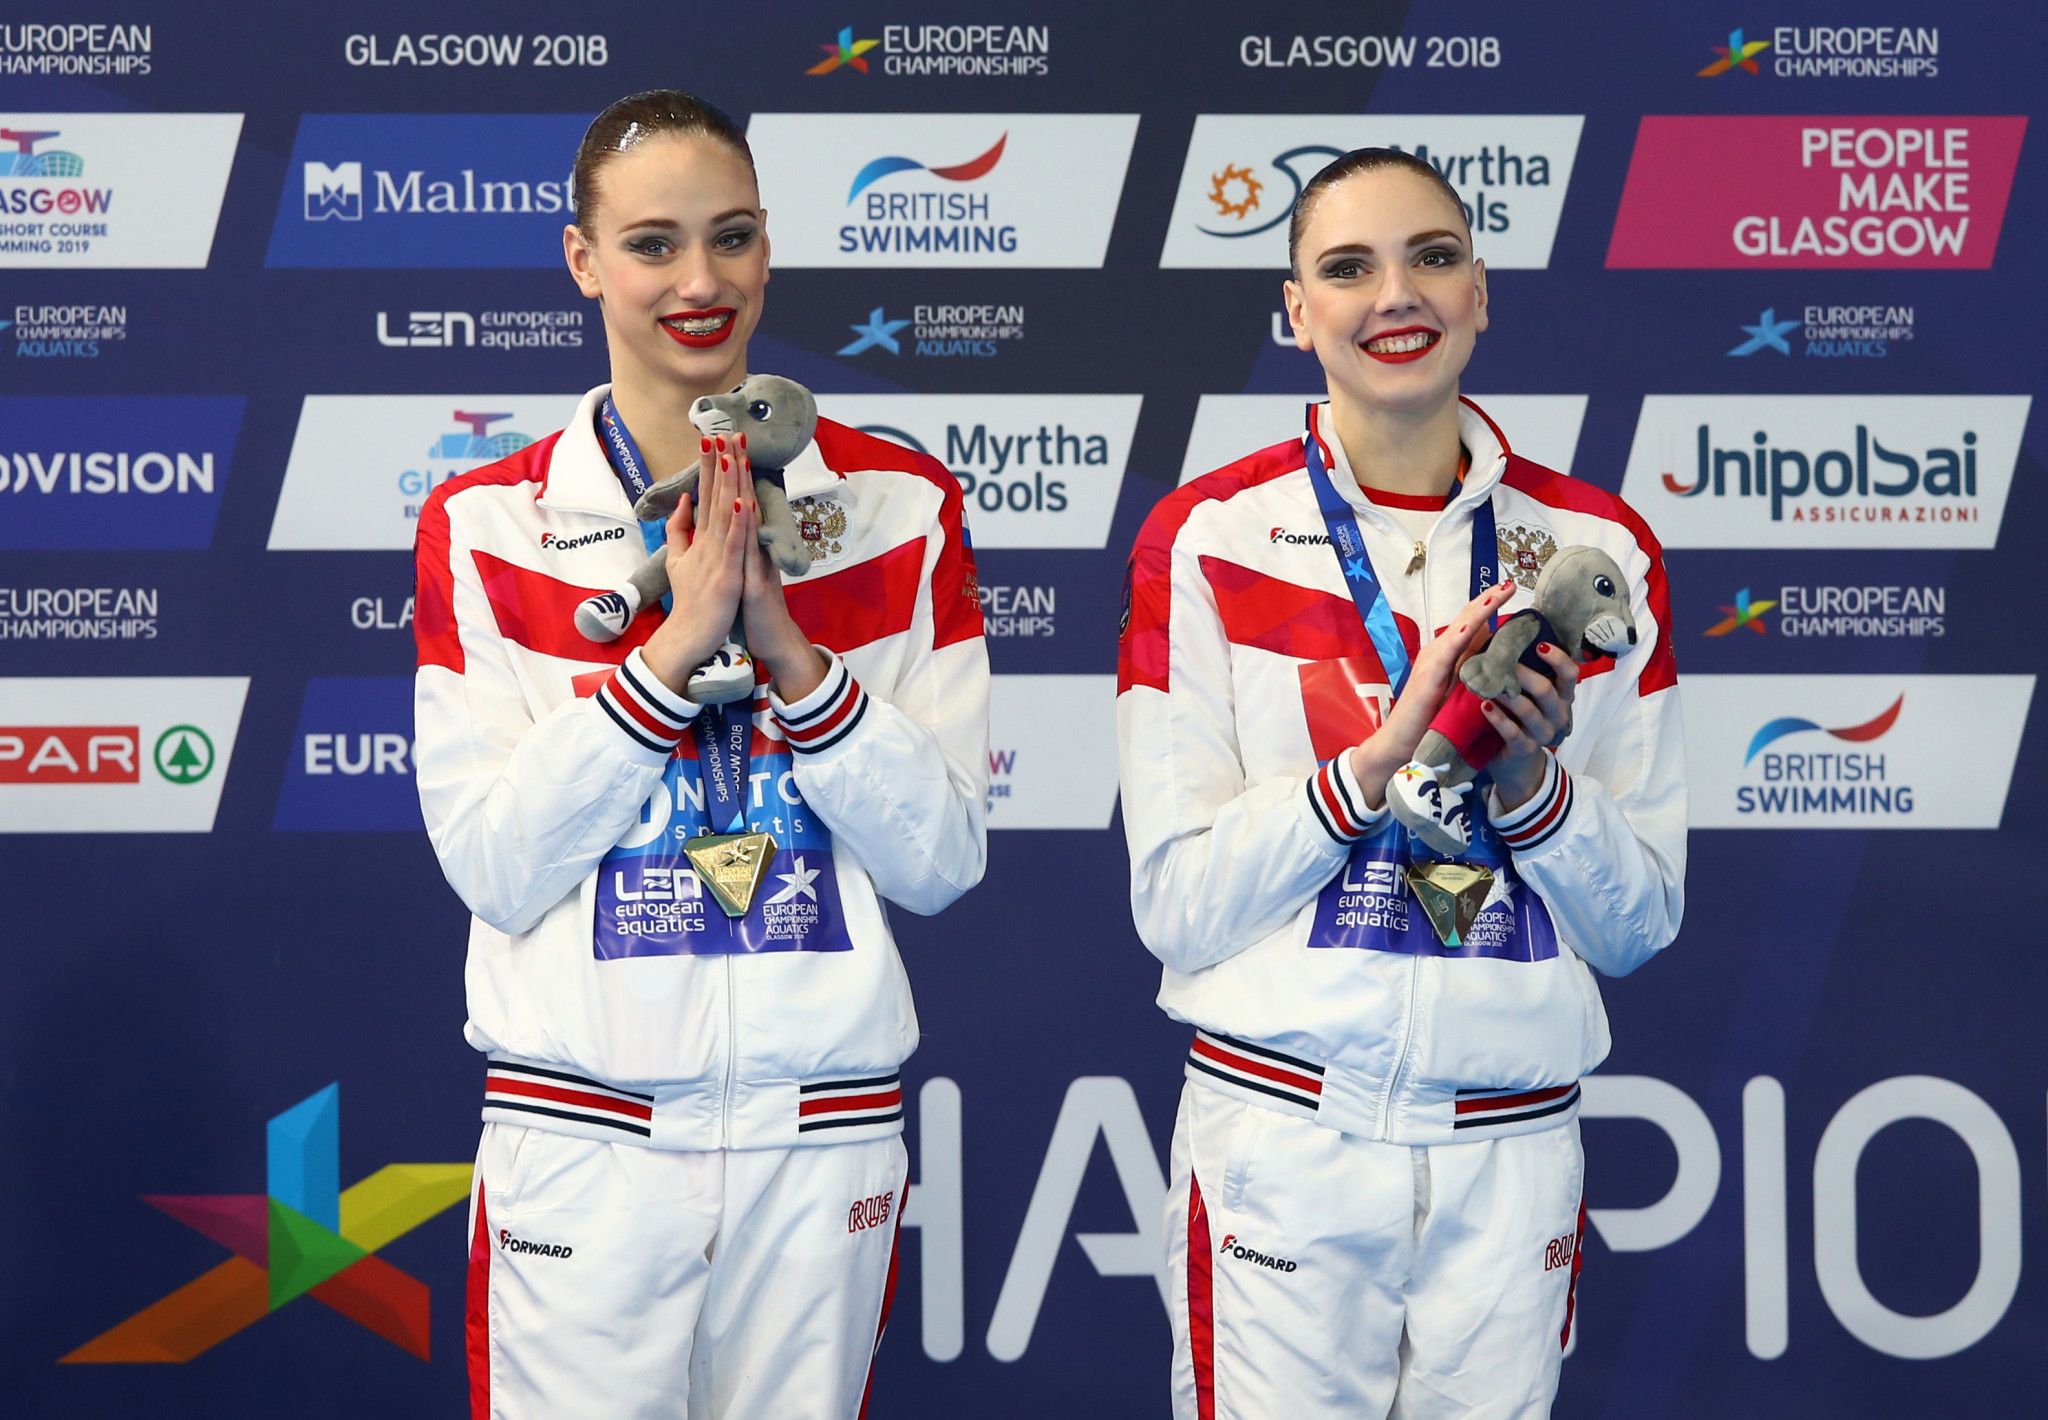 Russia live up to expectations in artistic swimming to secure first two gold medals at Glasgow 2018 European Championships